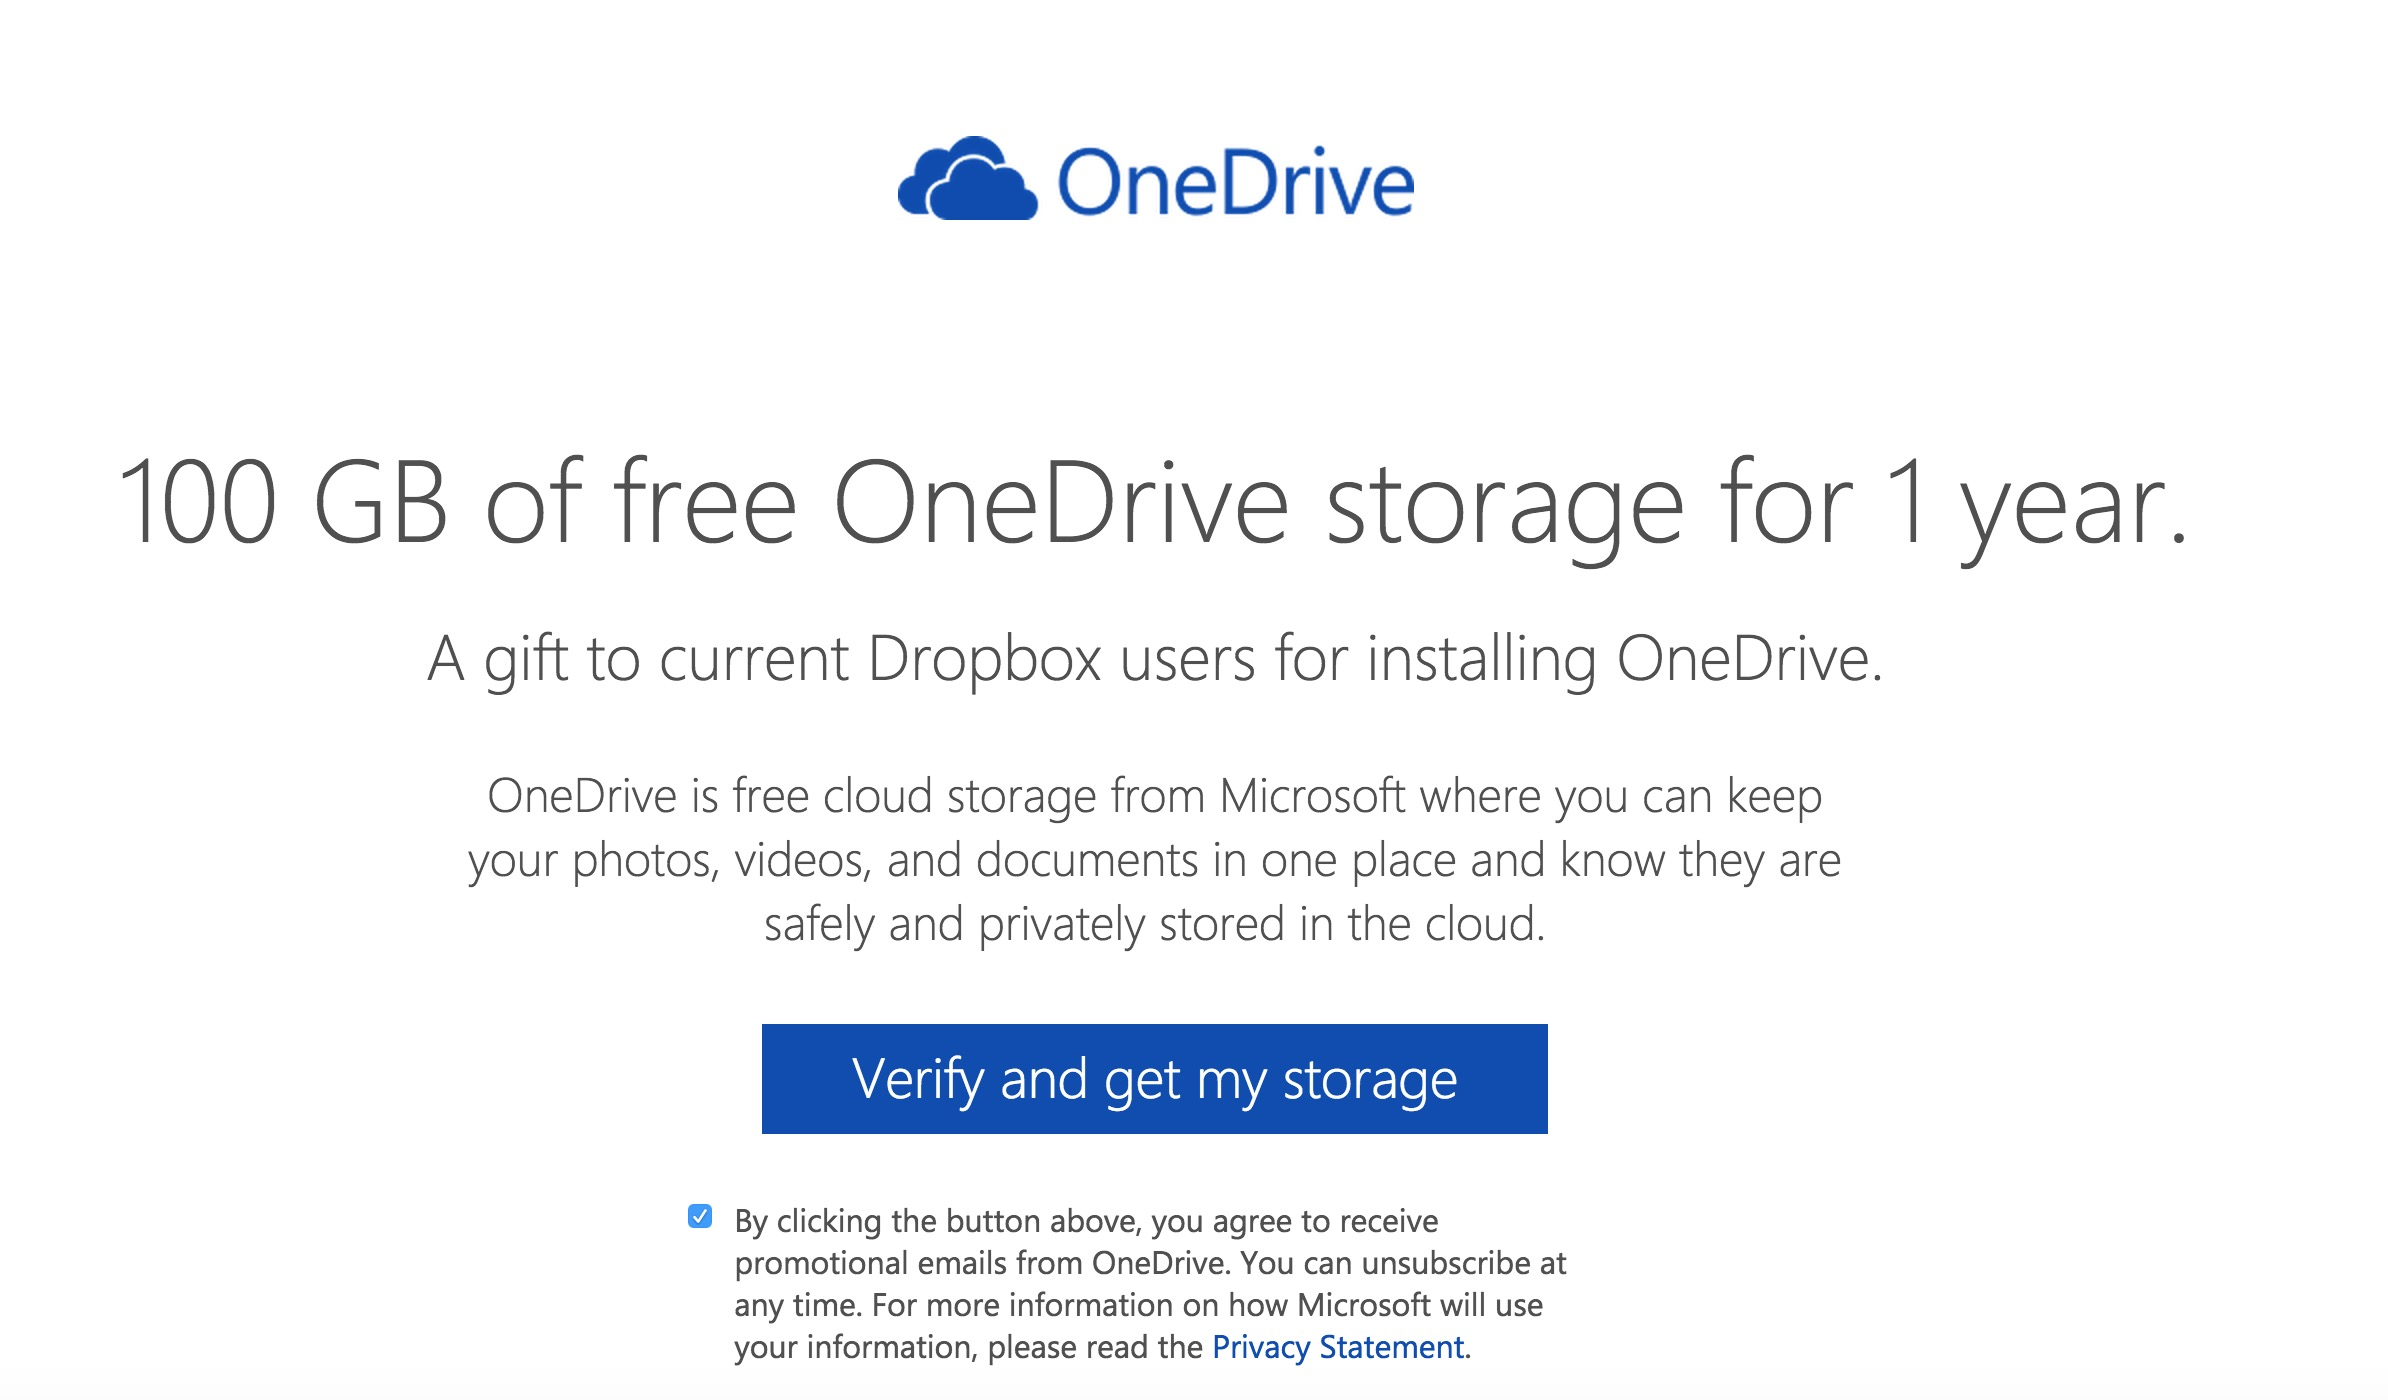 Onedrive: Microsoft Uses Dropbox as An Example